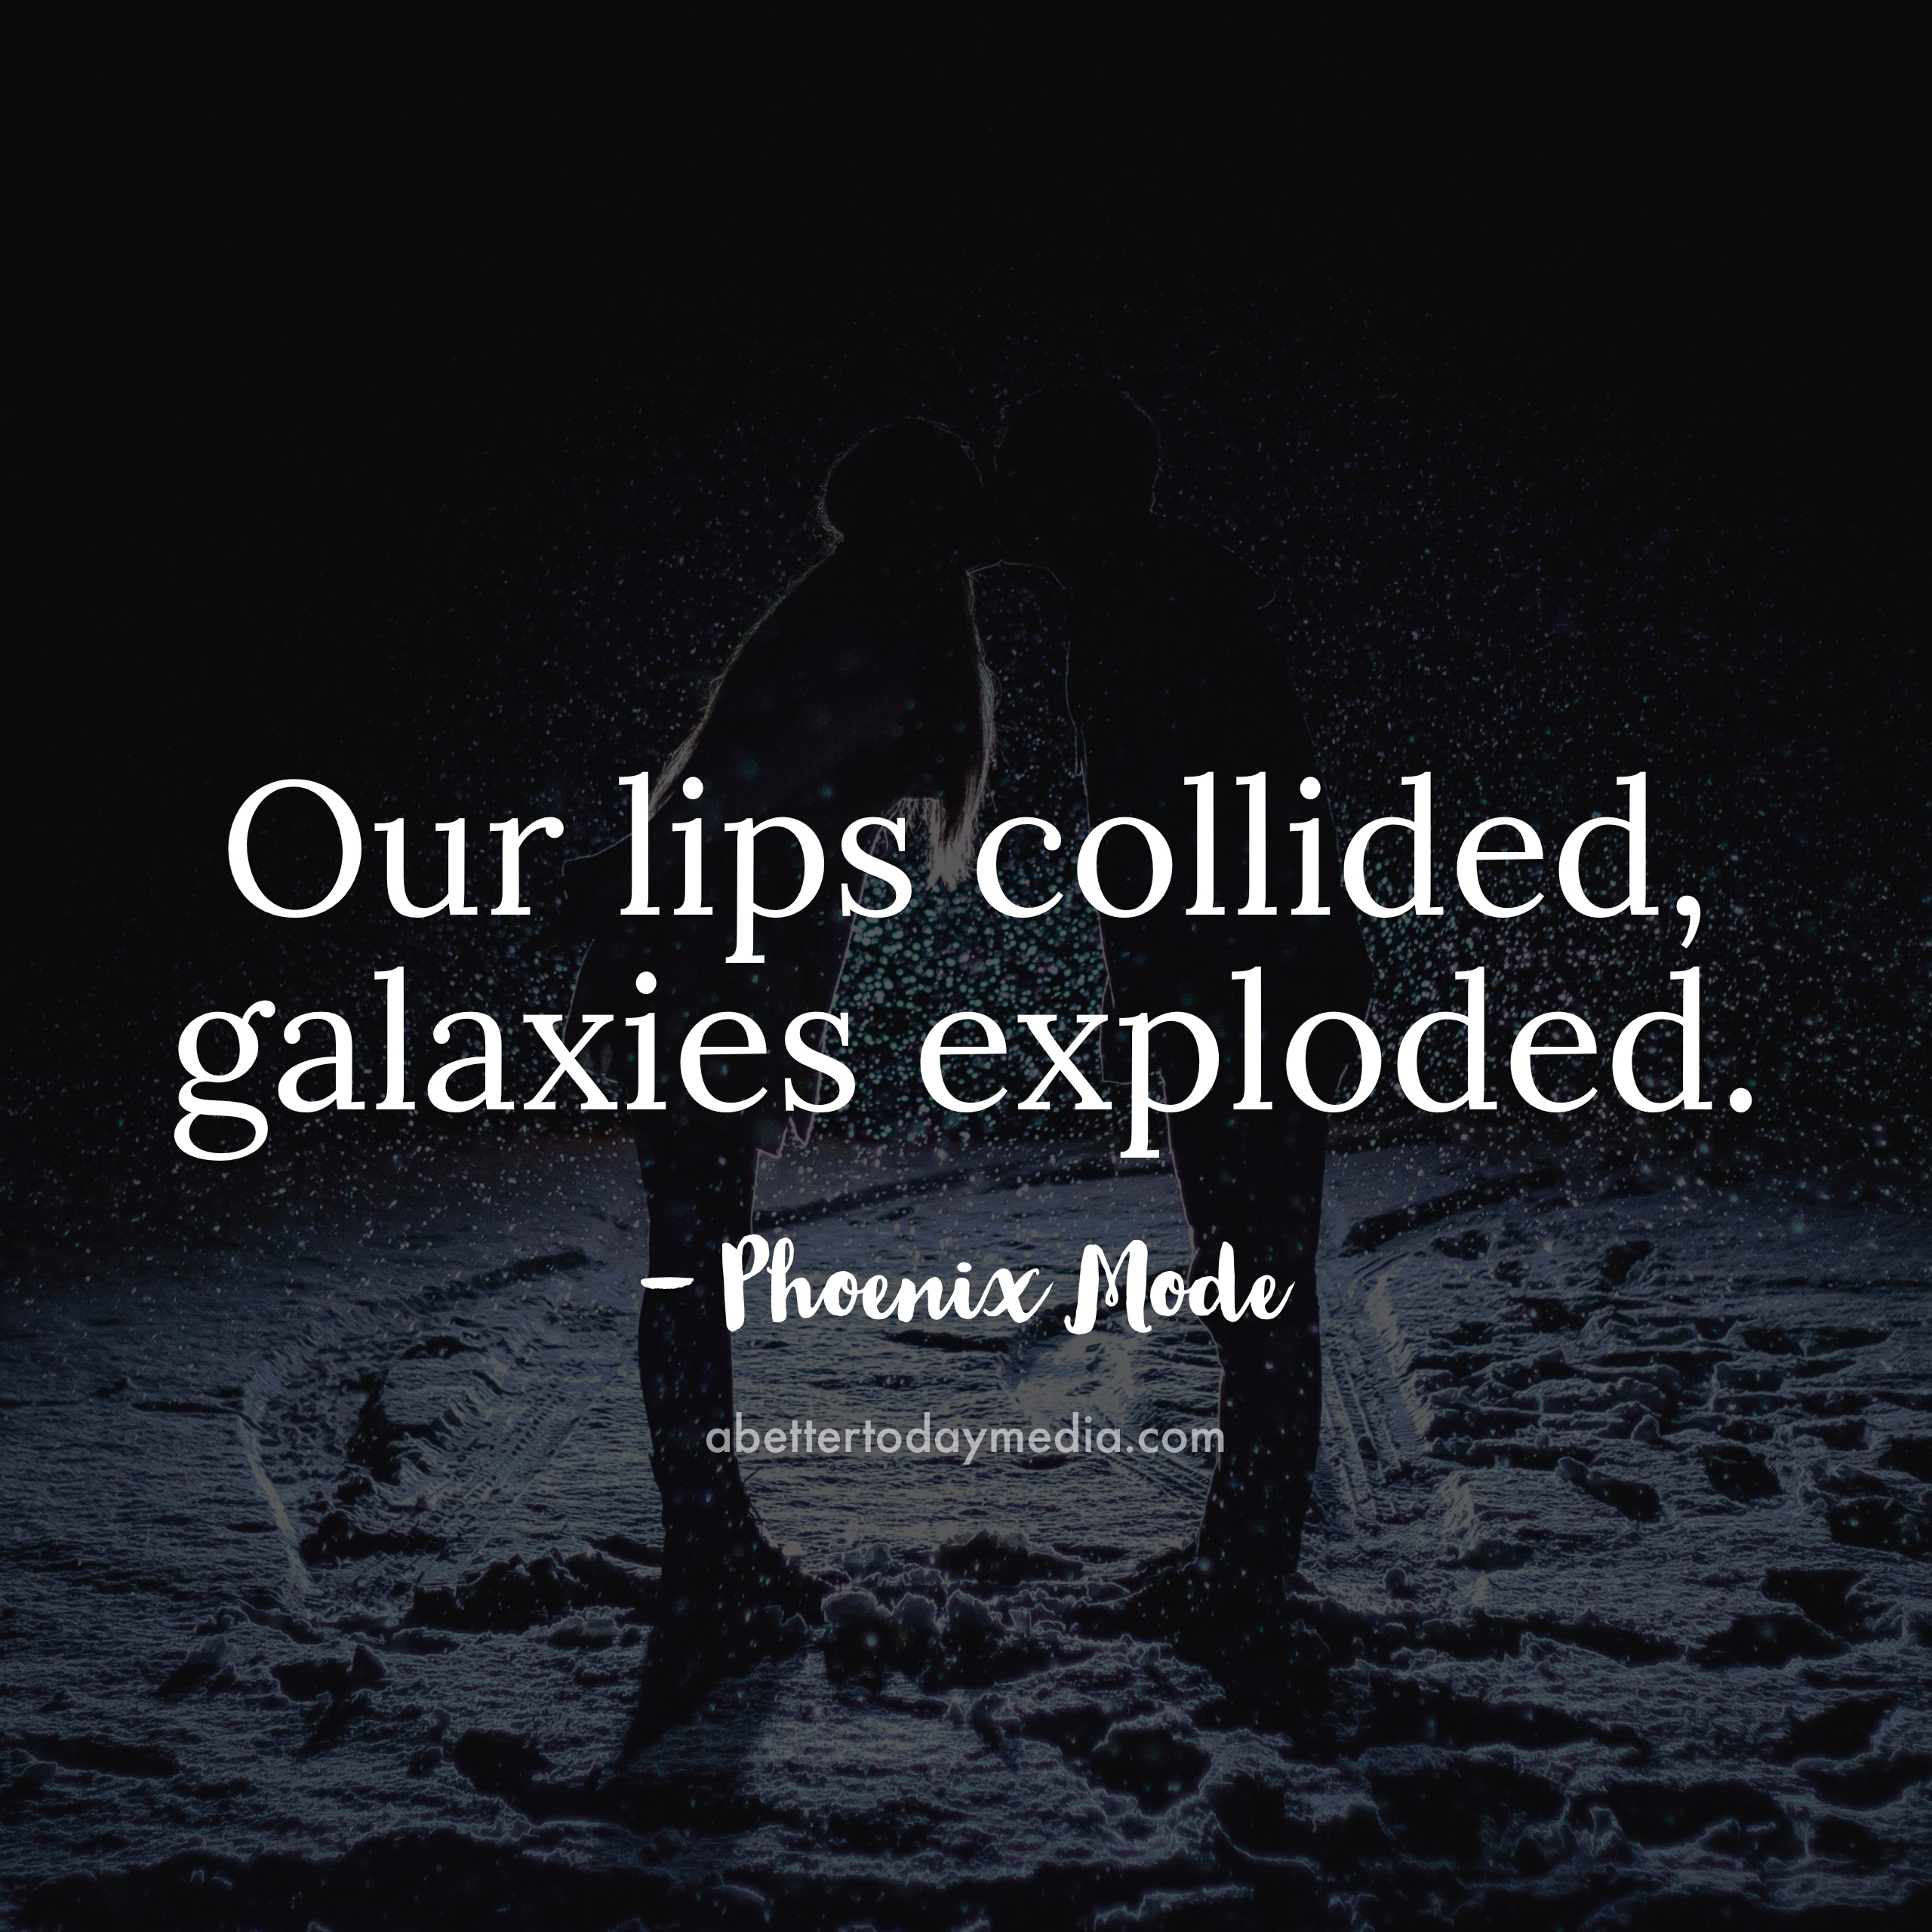 The Best of Phoenix Mode: 10 Love Quotes with Images